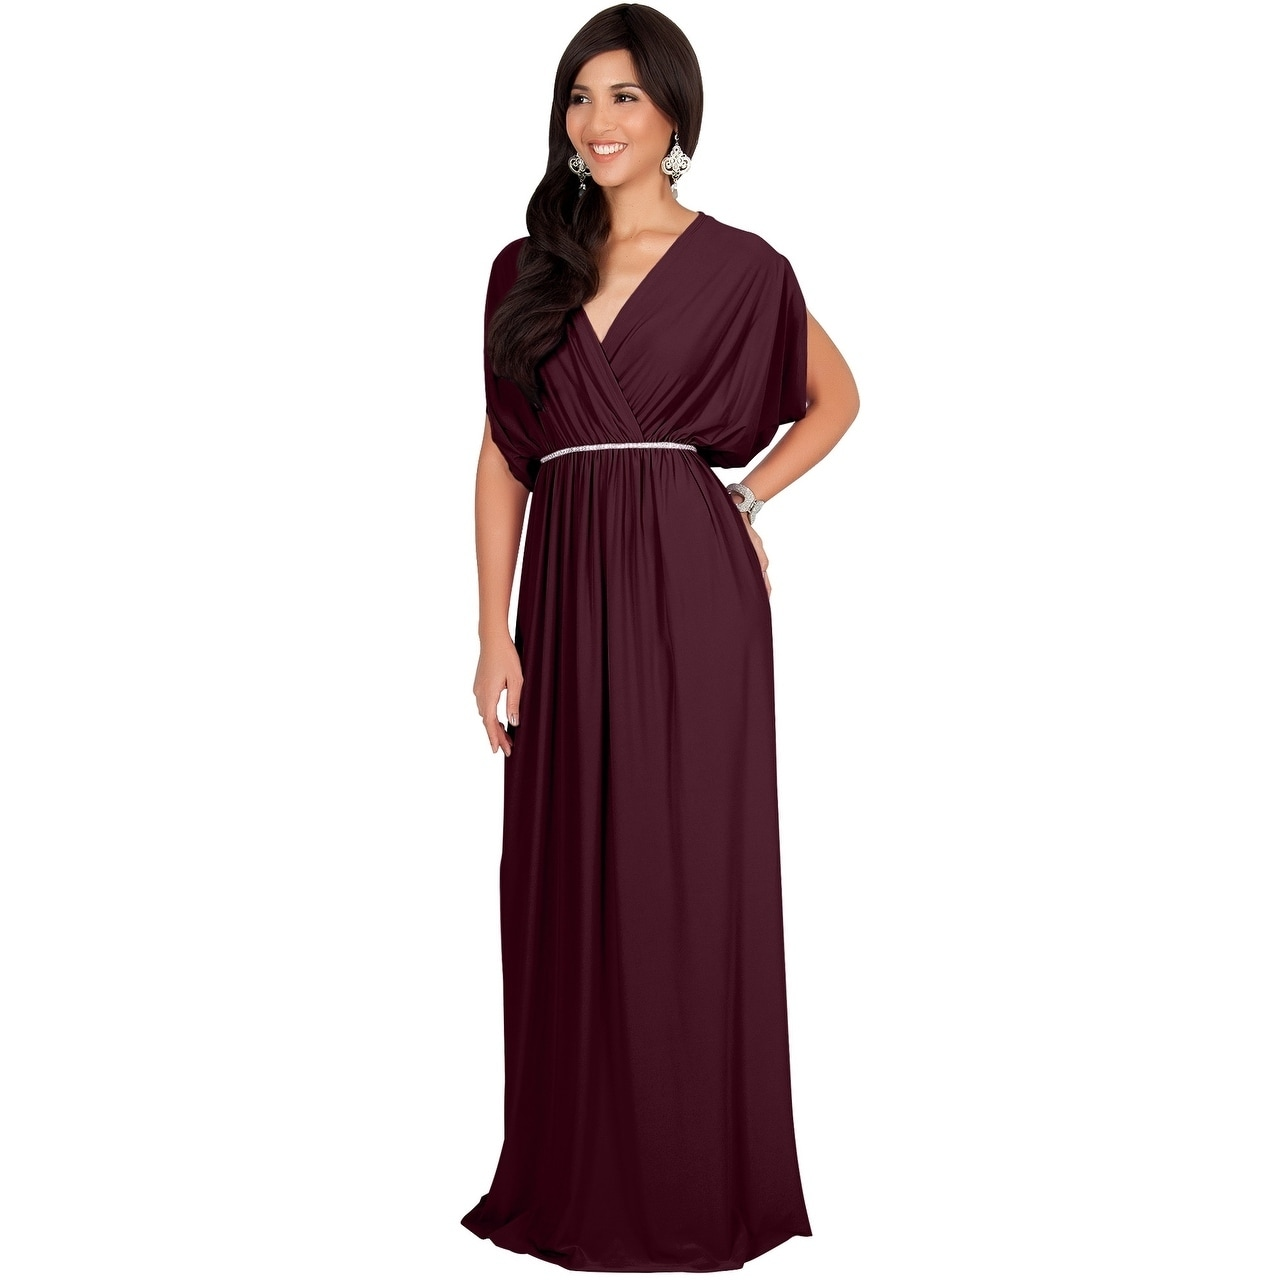 acee9598494bac Shop KOH KOH Womens Elegant Long V Neck Bridesmaid Flowy Maxi dresses -  Free Shipping Today - Overstock - 20932581